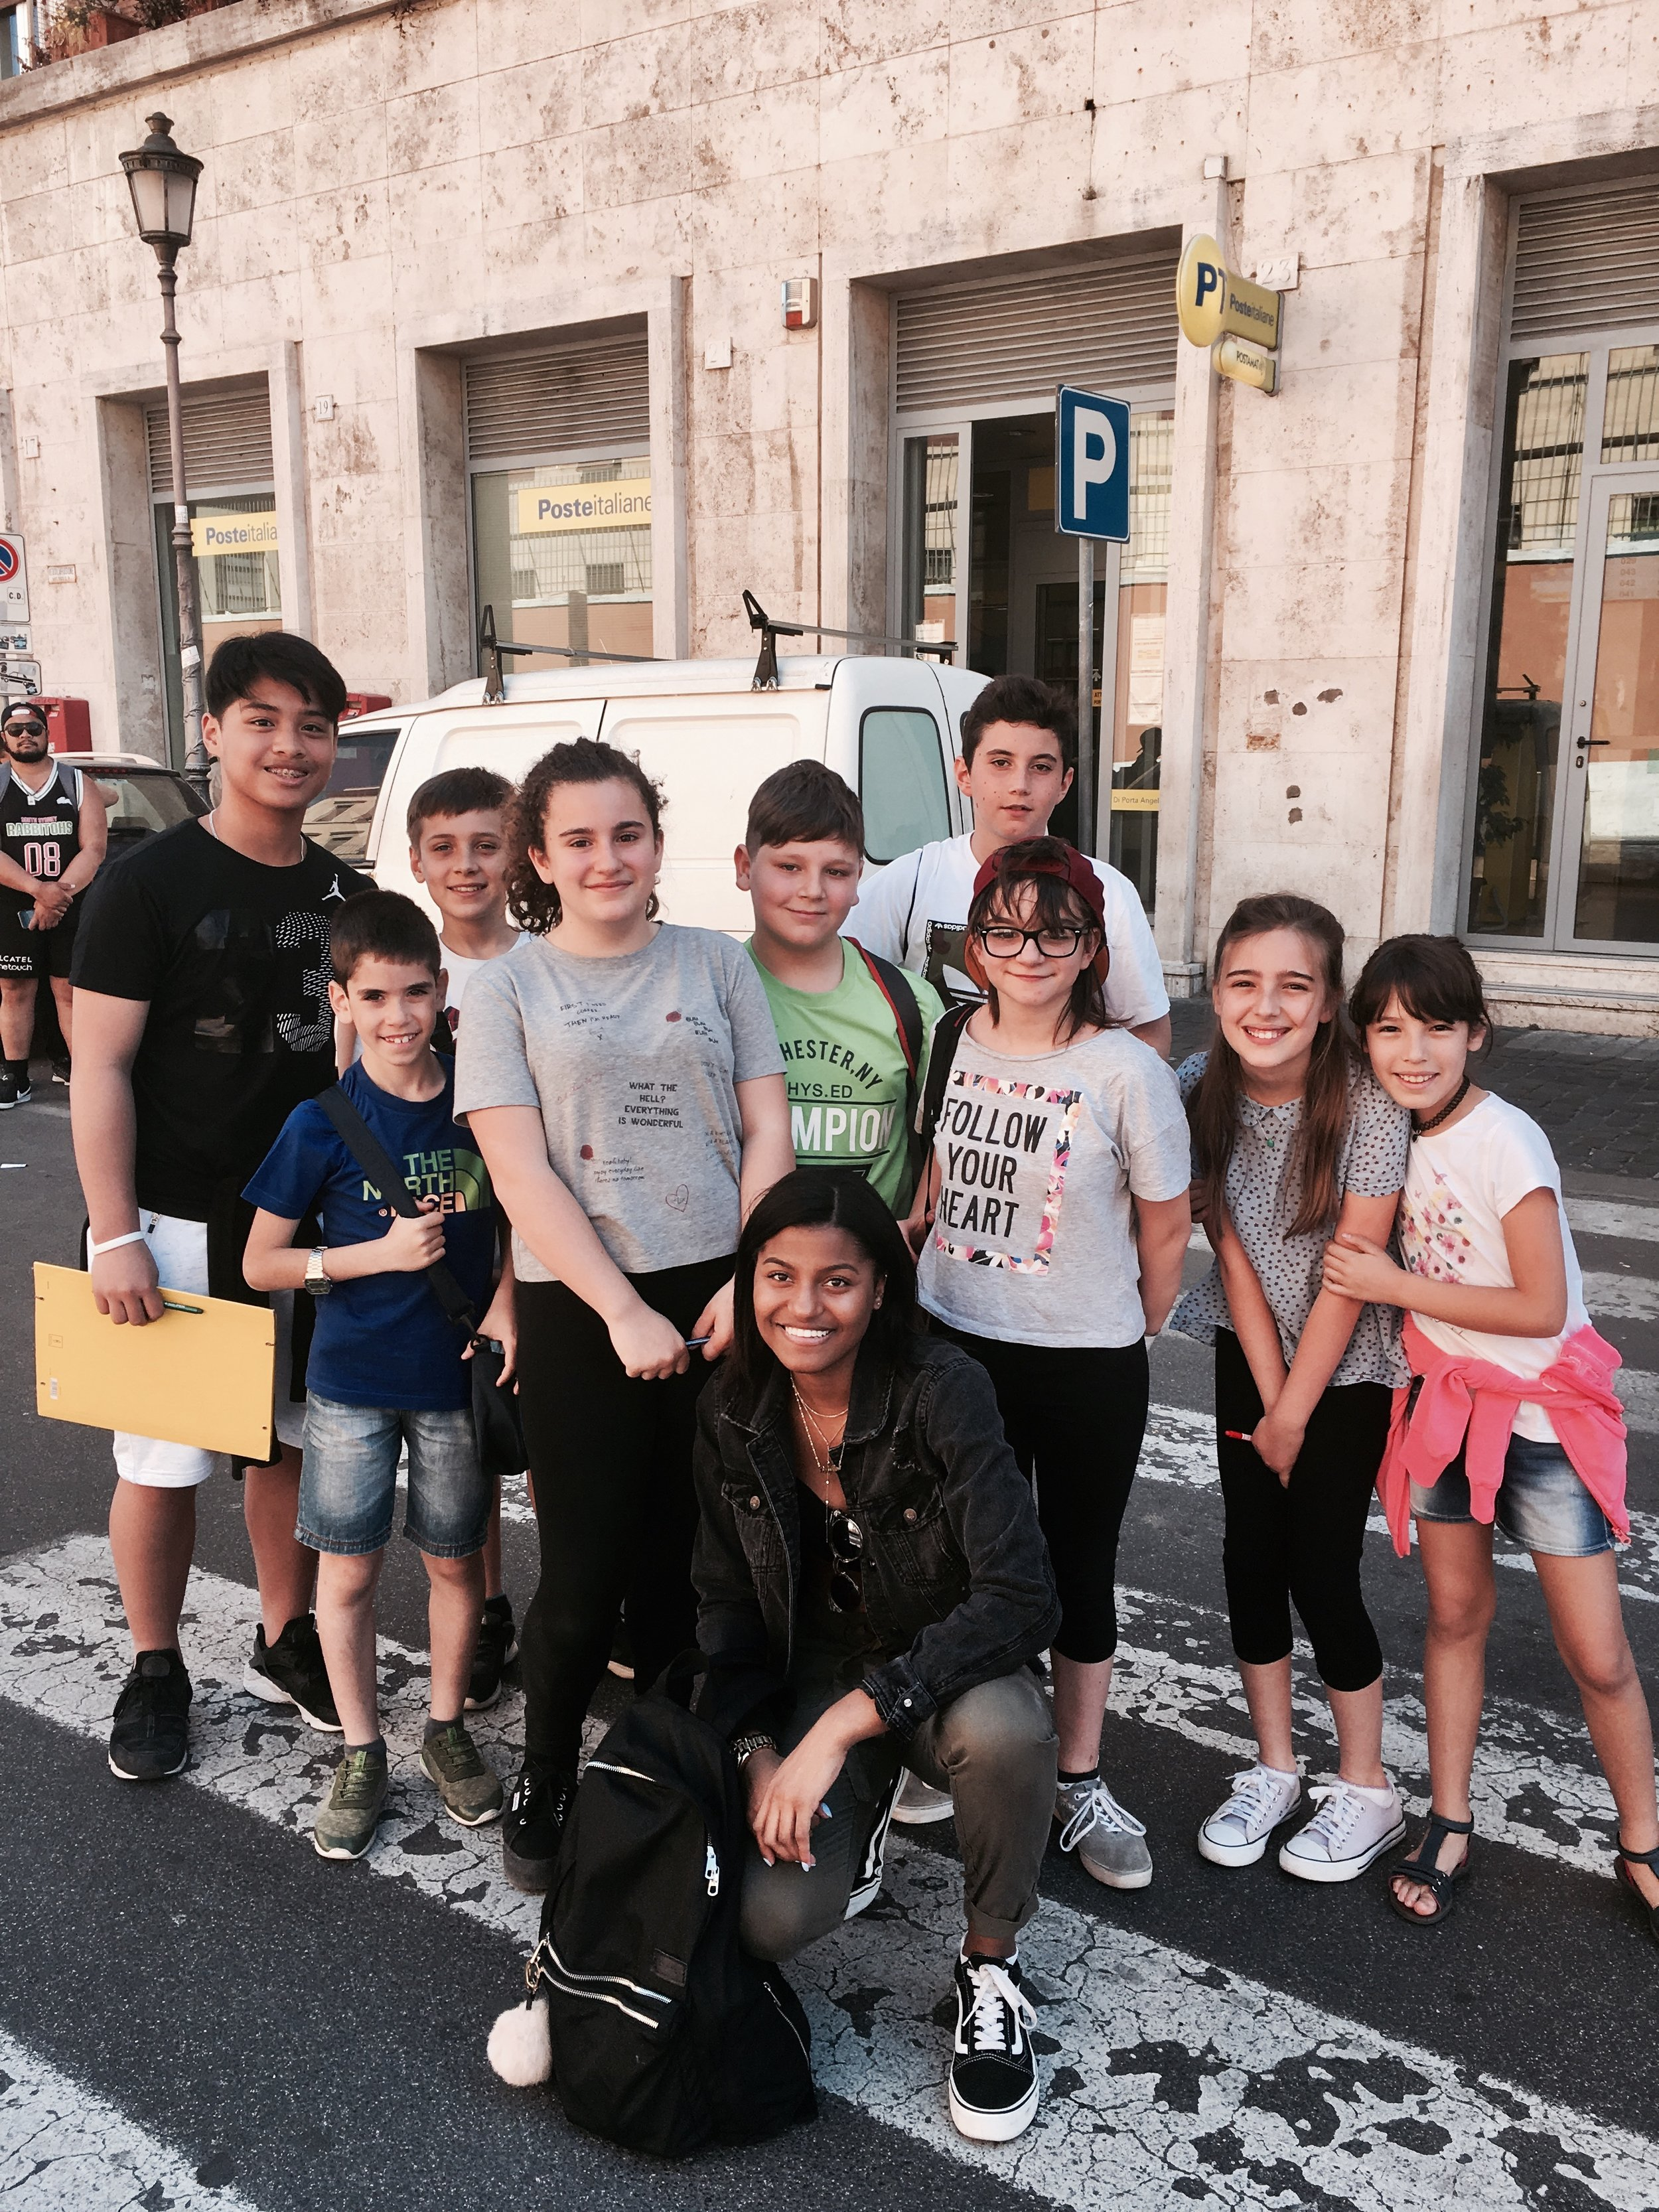 I had the chance to be interviewed by these young Italian Students who were practicing their english on Americans.